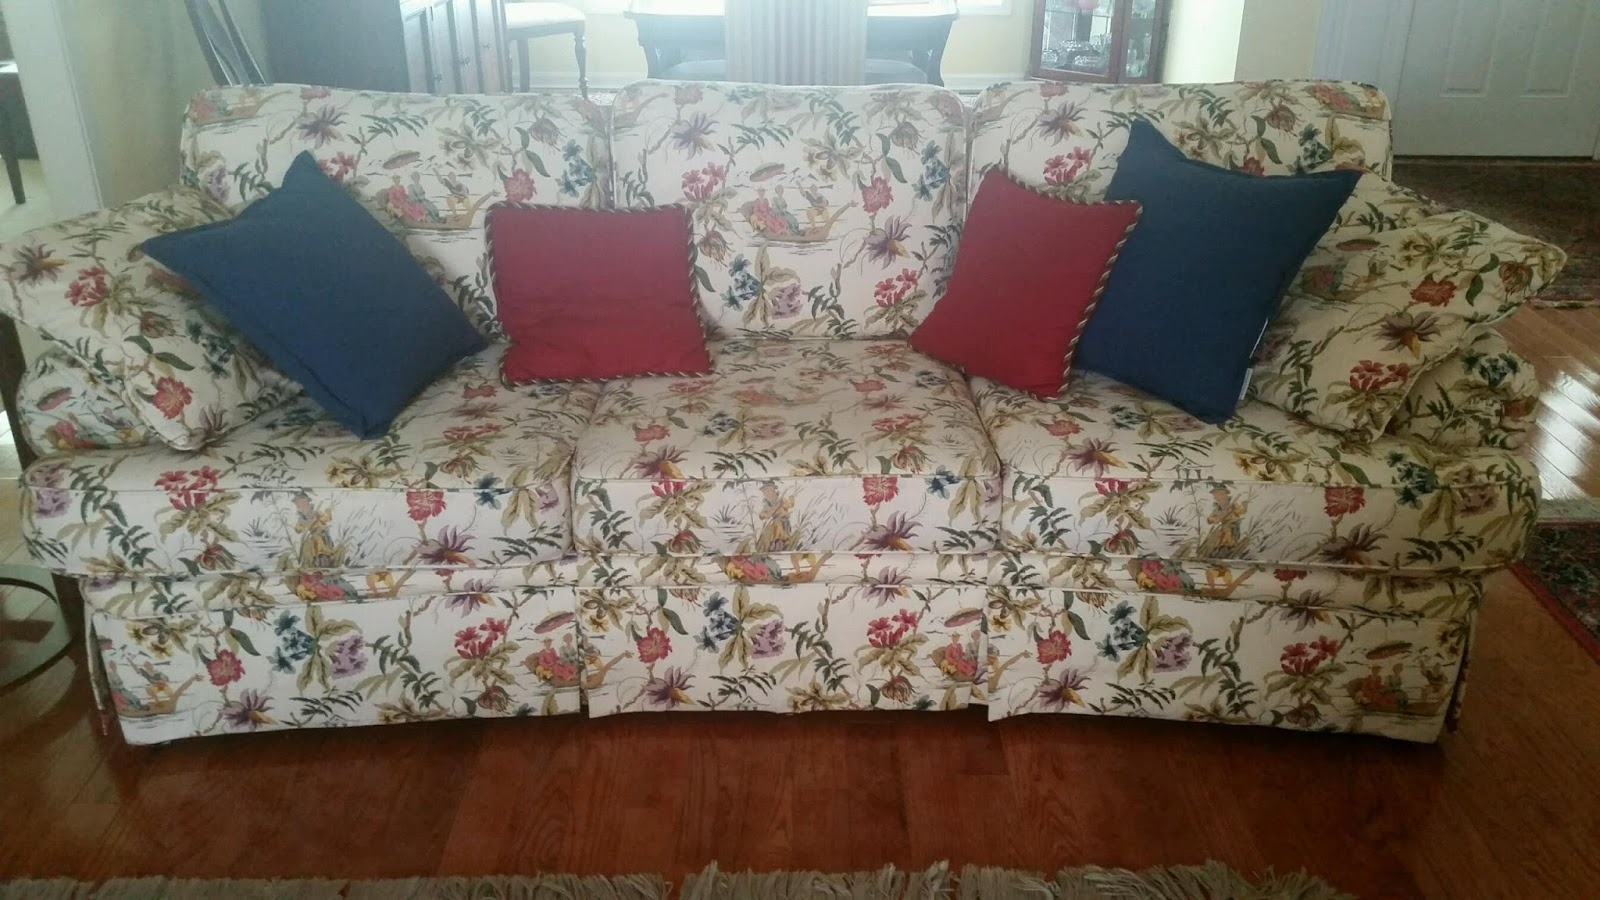 Pam Morris Sews August 2015 Intended For Chintz Covered Sofas (Image 11 of 15)